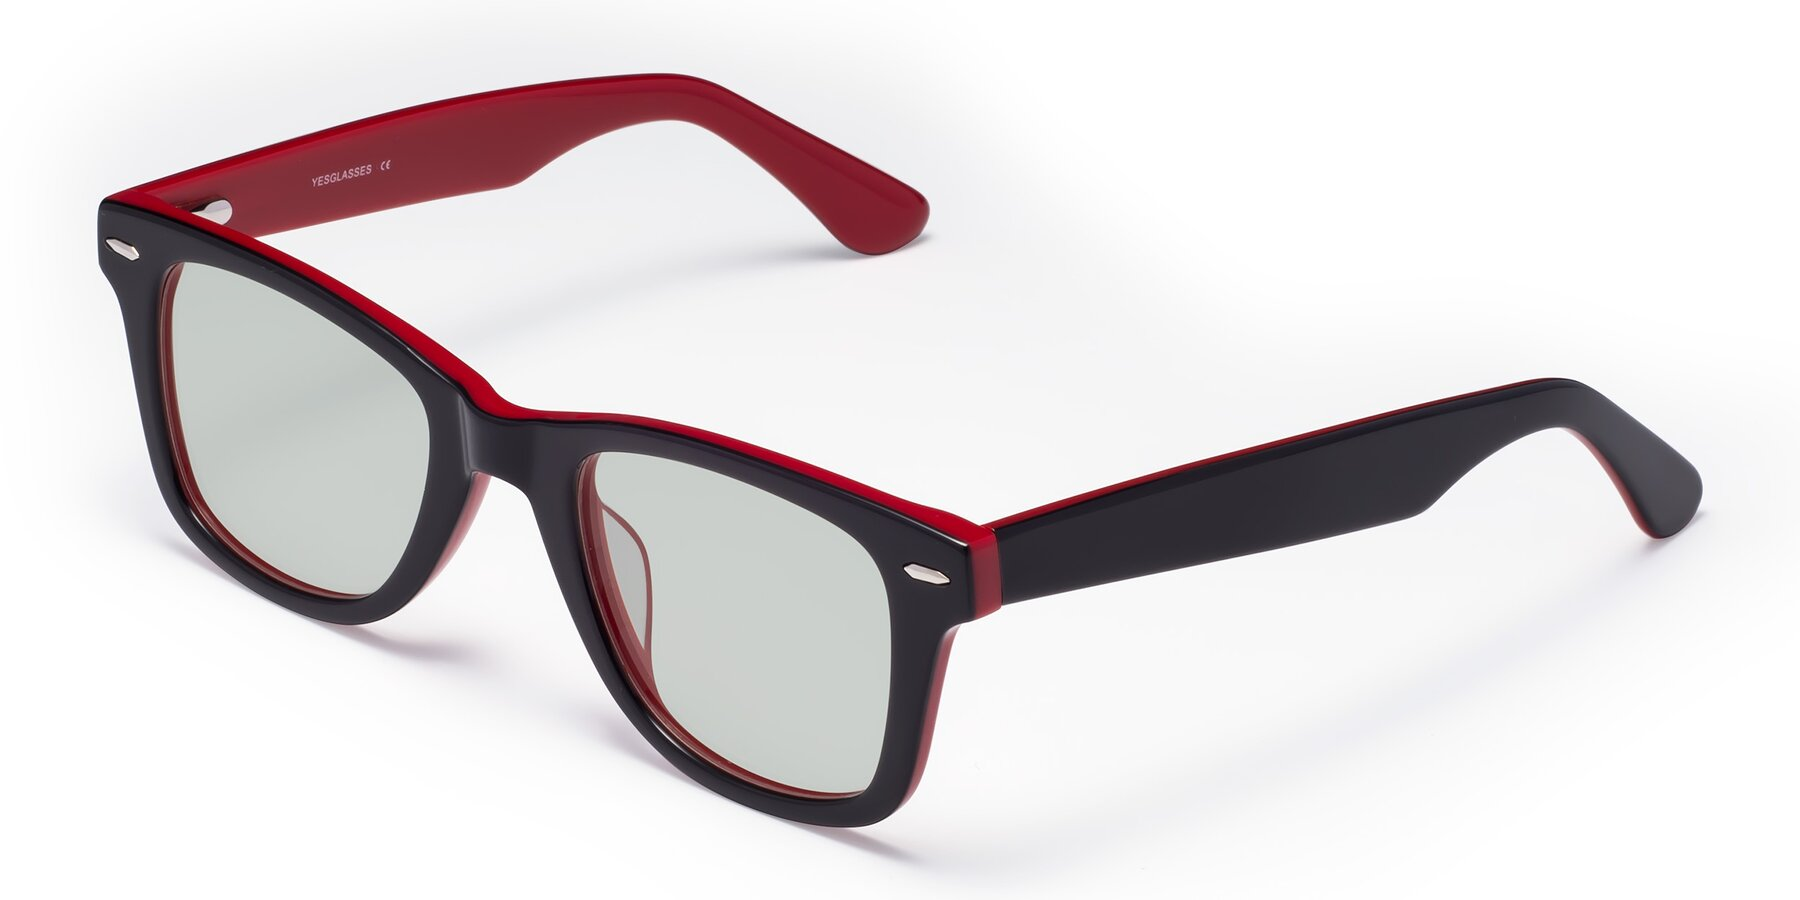 Angle of Rocky in Black-Wine with Light Green Tinted Lenses